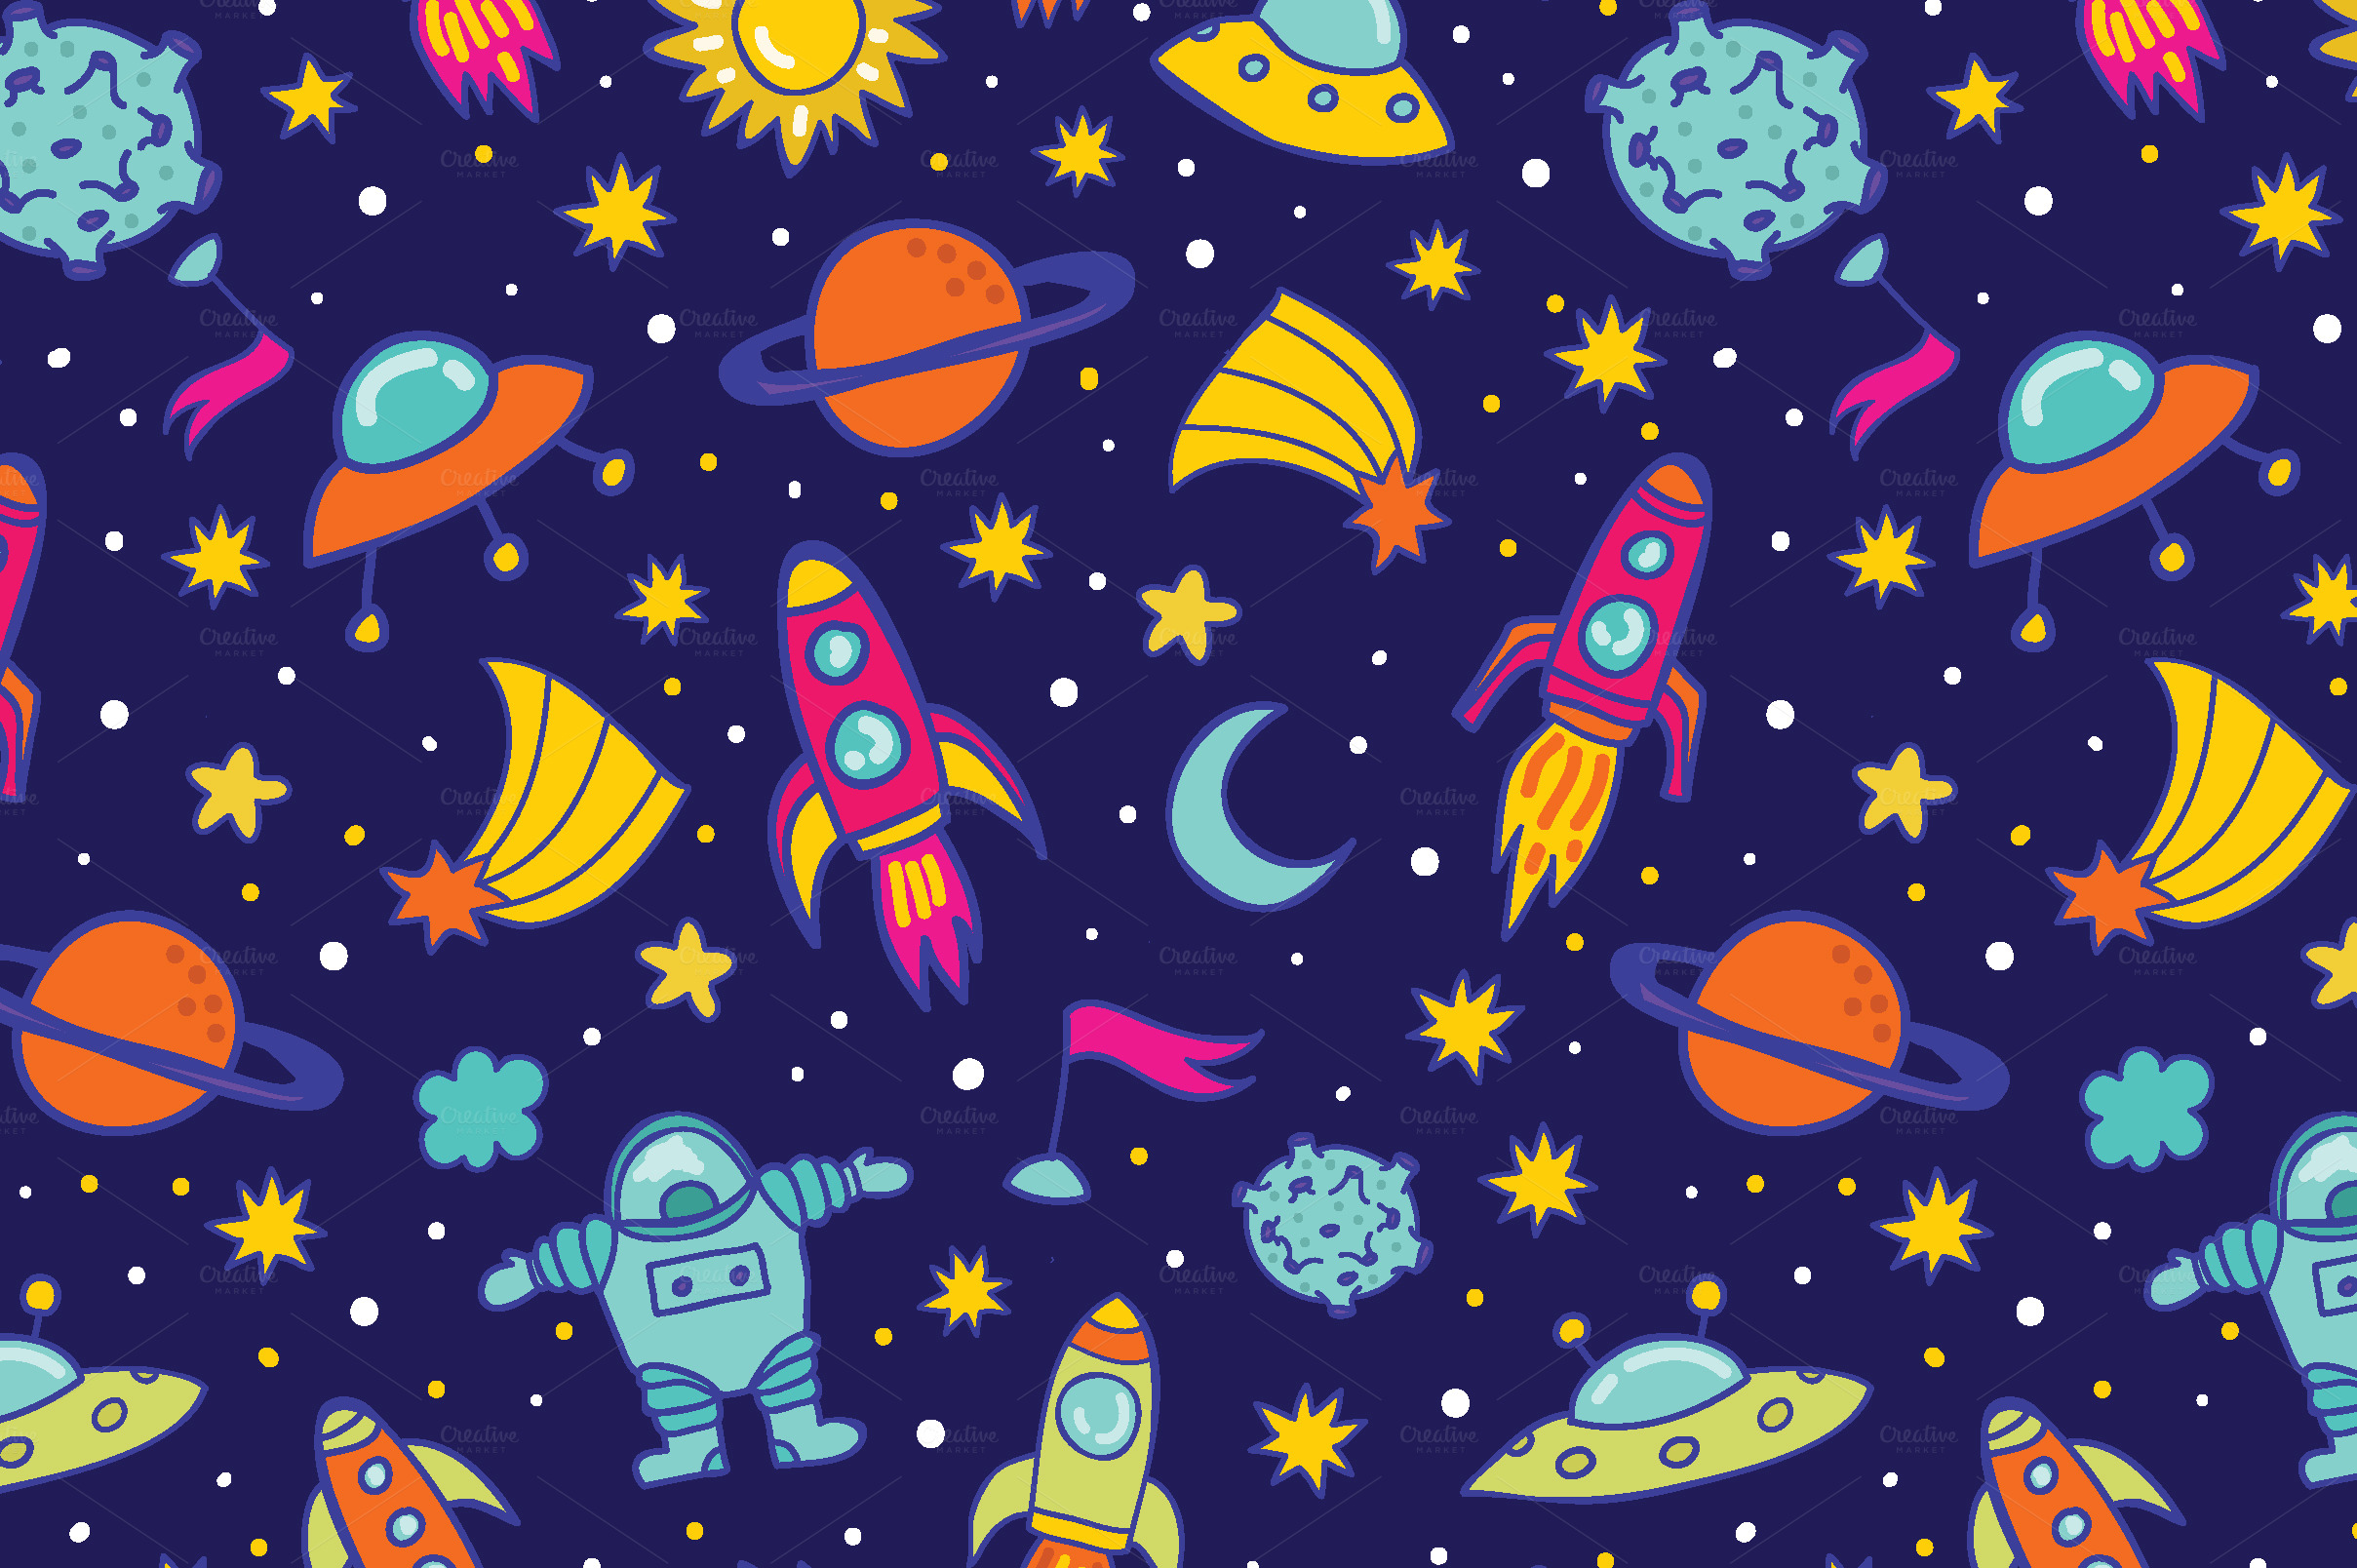 Cute Wedding Cartoon Wallpaper Space Pattern Patterns On Creative Market